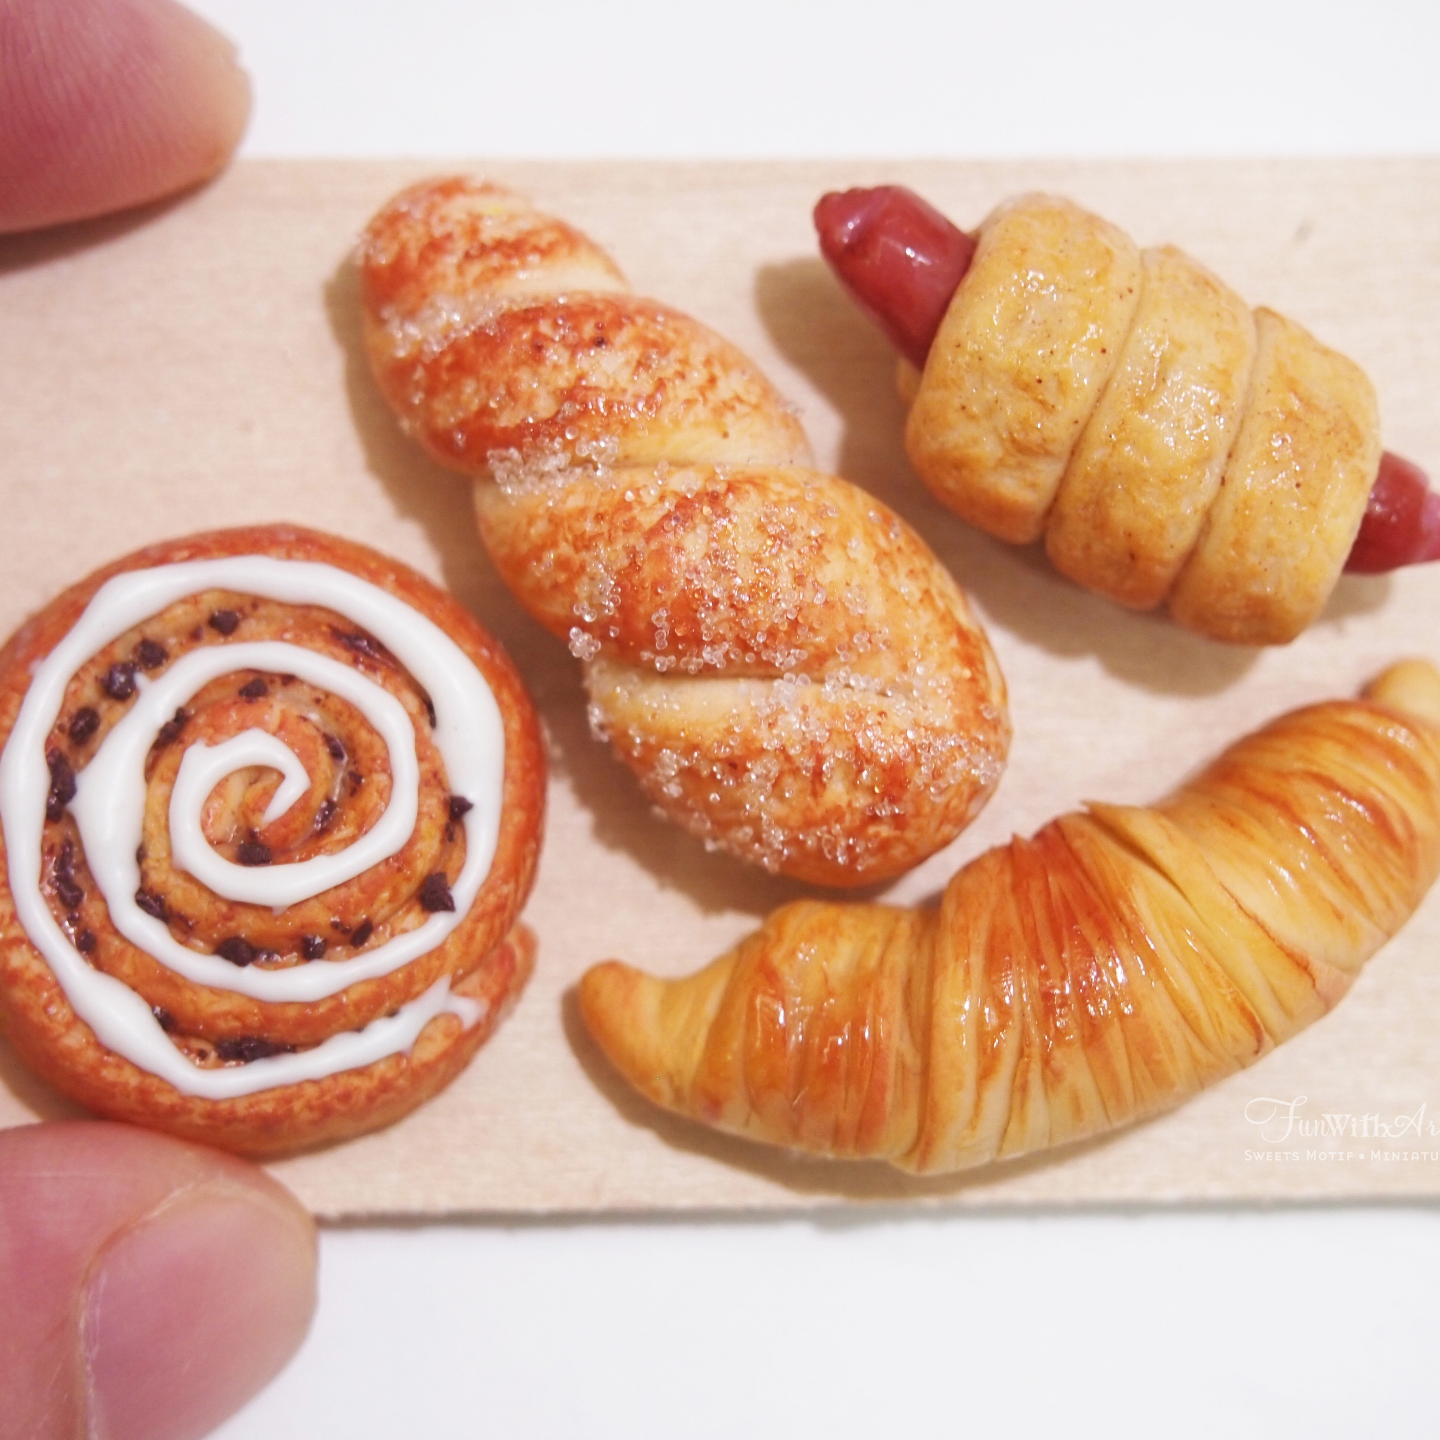 Miniature Bread on wooden Board